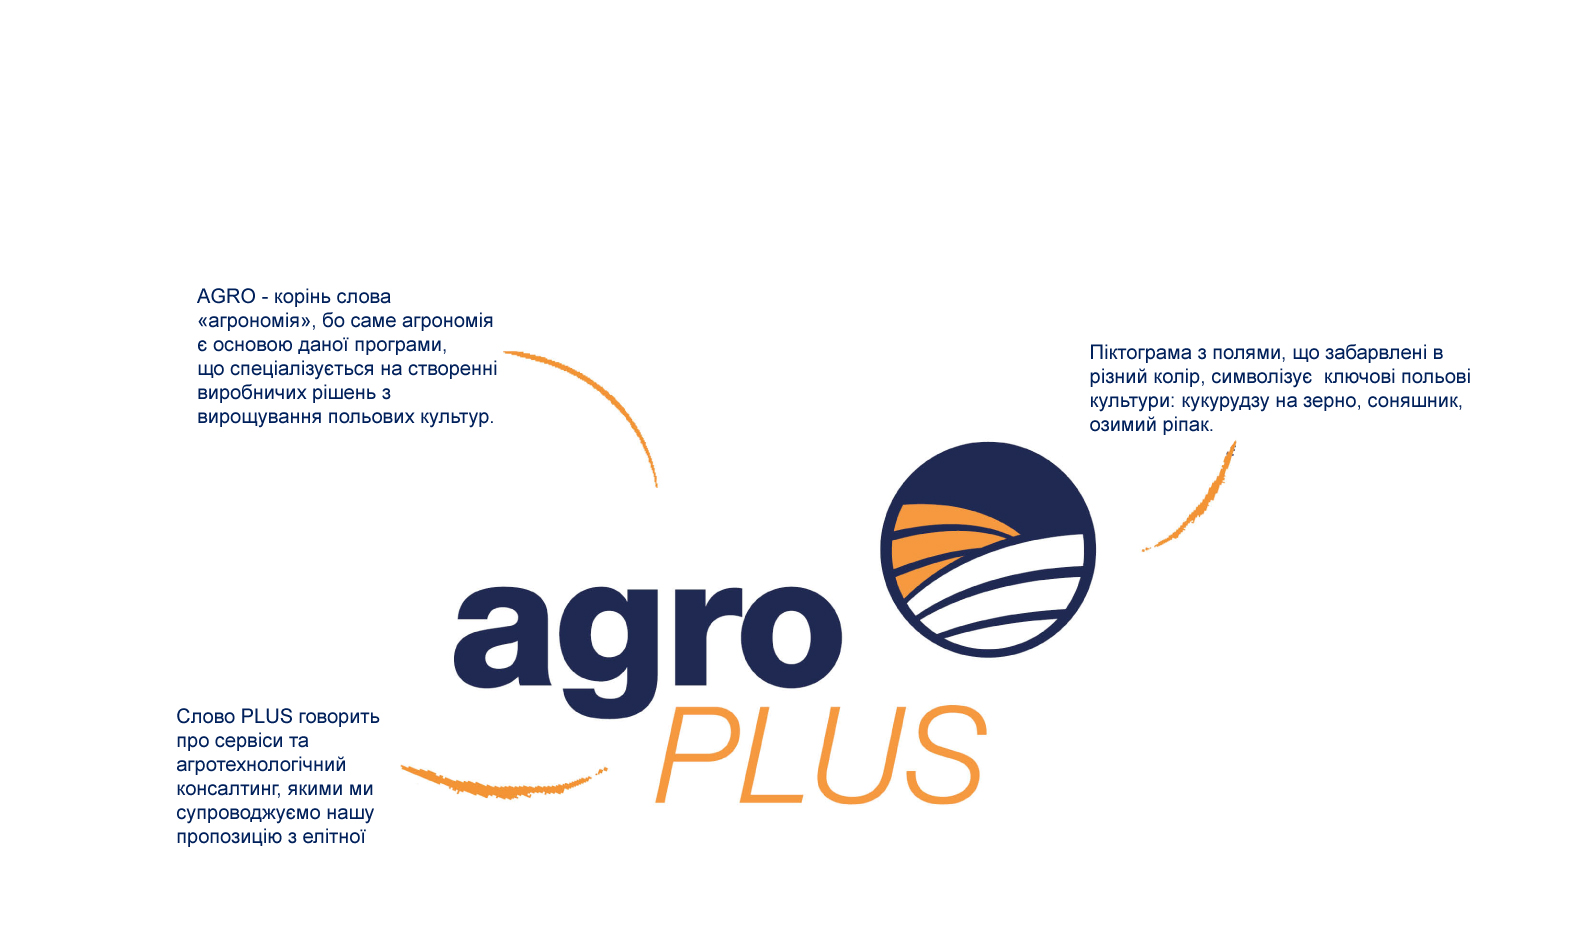 agroplus description